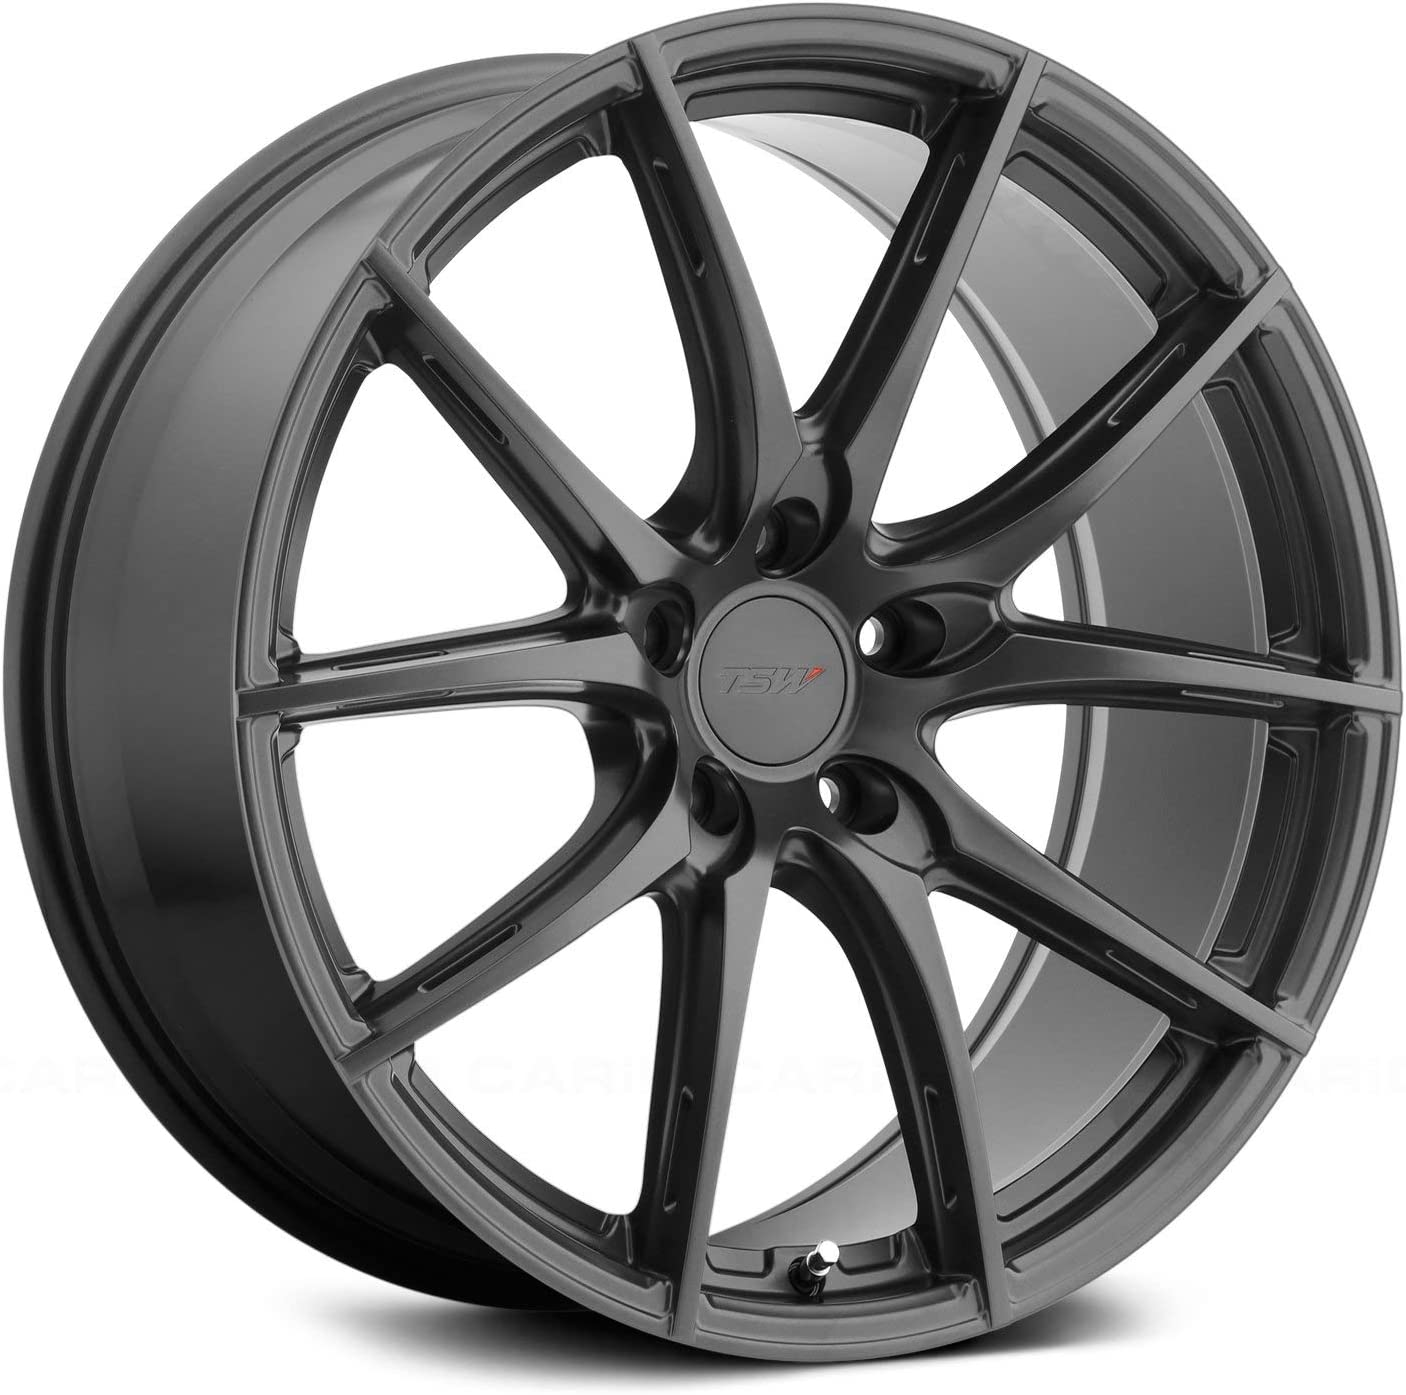 TSW Dealing High material full price reduction Sprint 18x8.5 5x114.3 5x4.5